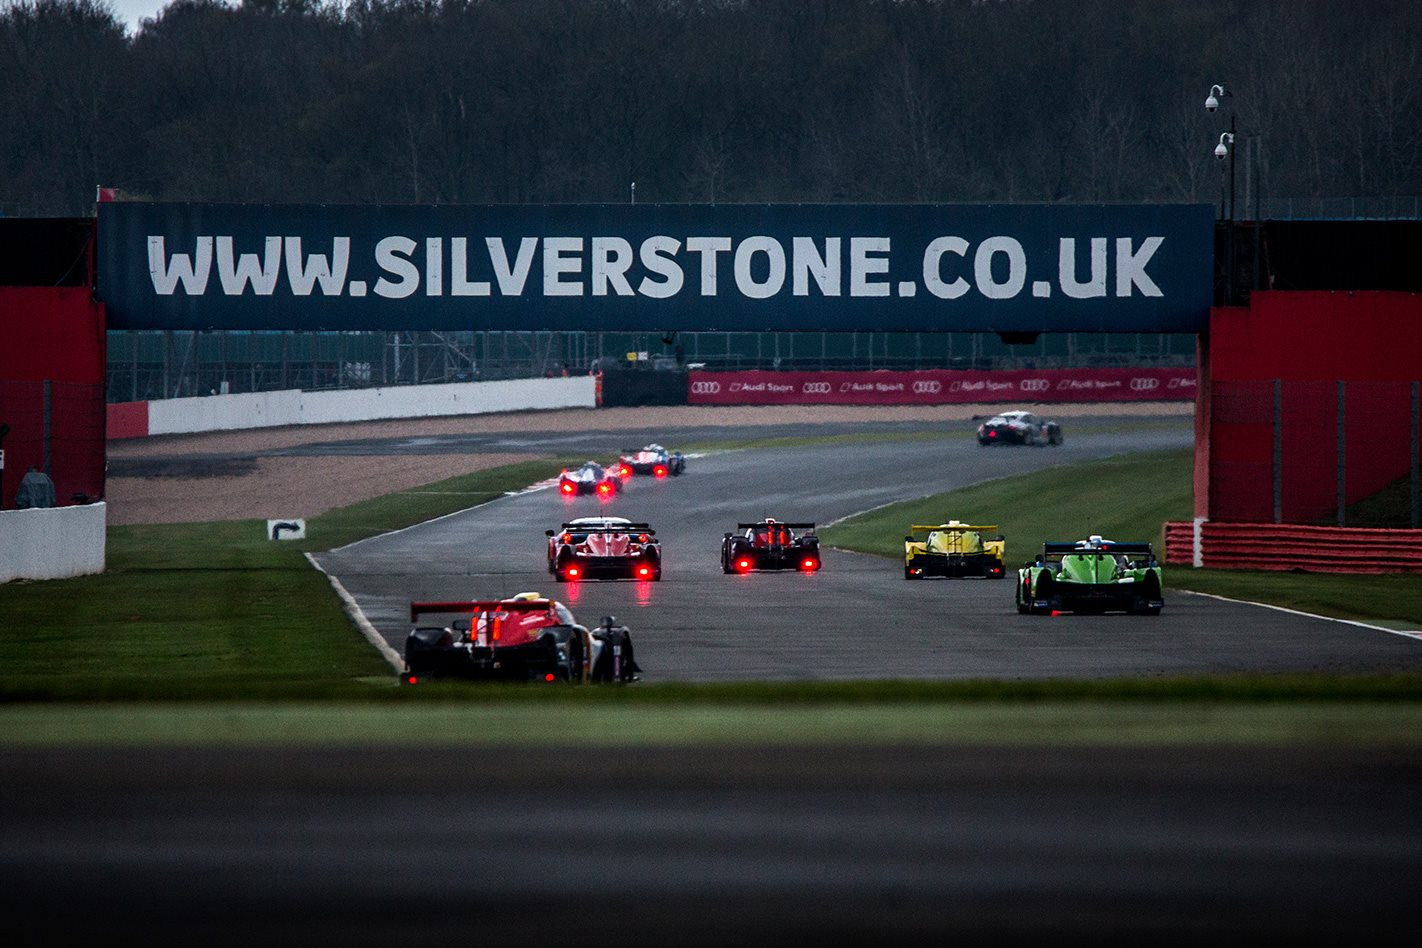 Silverstone F1 track sale blocked by Porsche